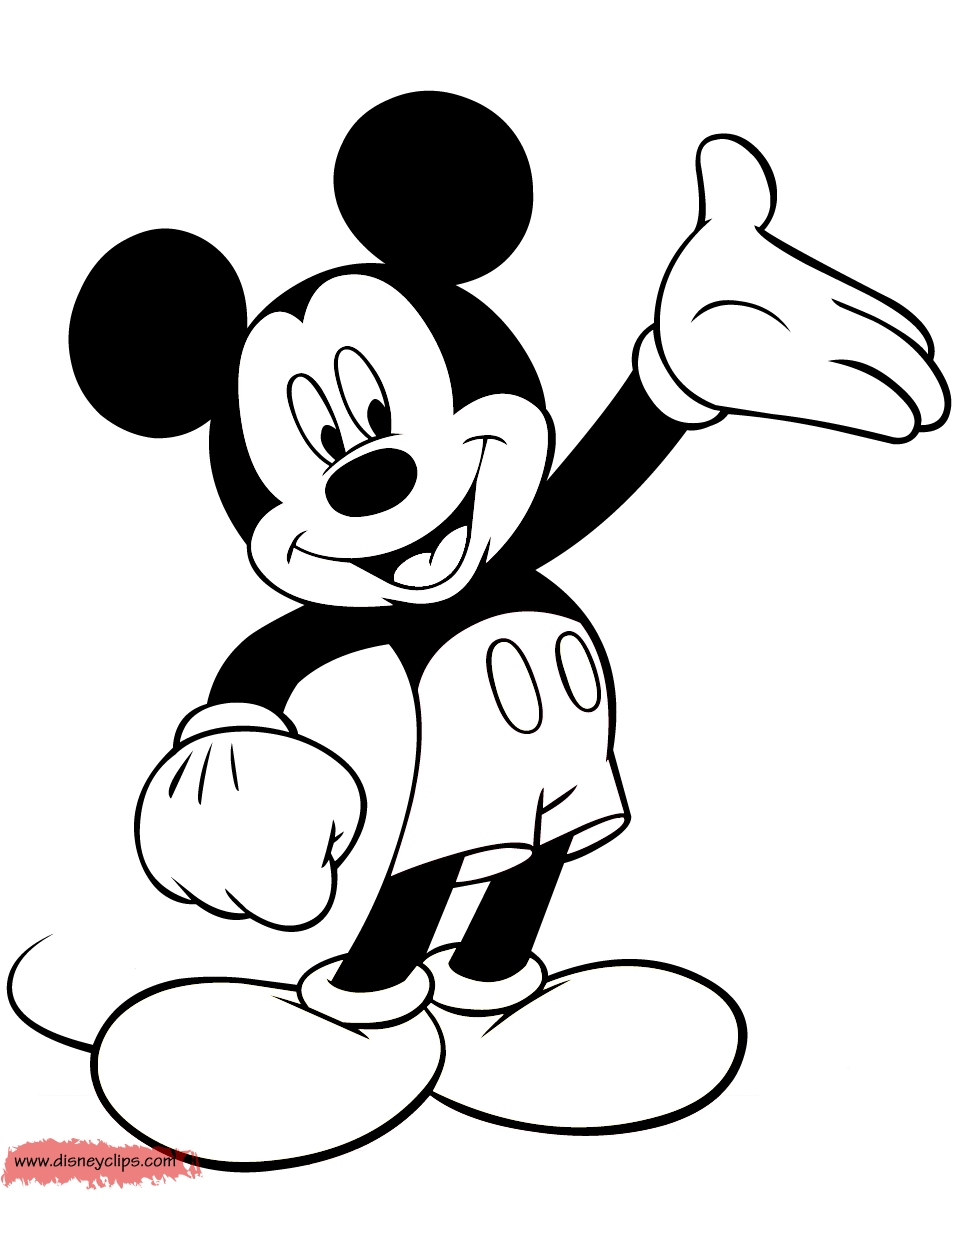 free mickey mouse coloring pages - mickeycolor8